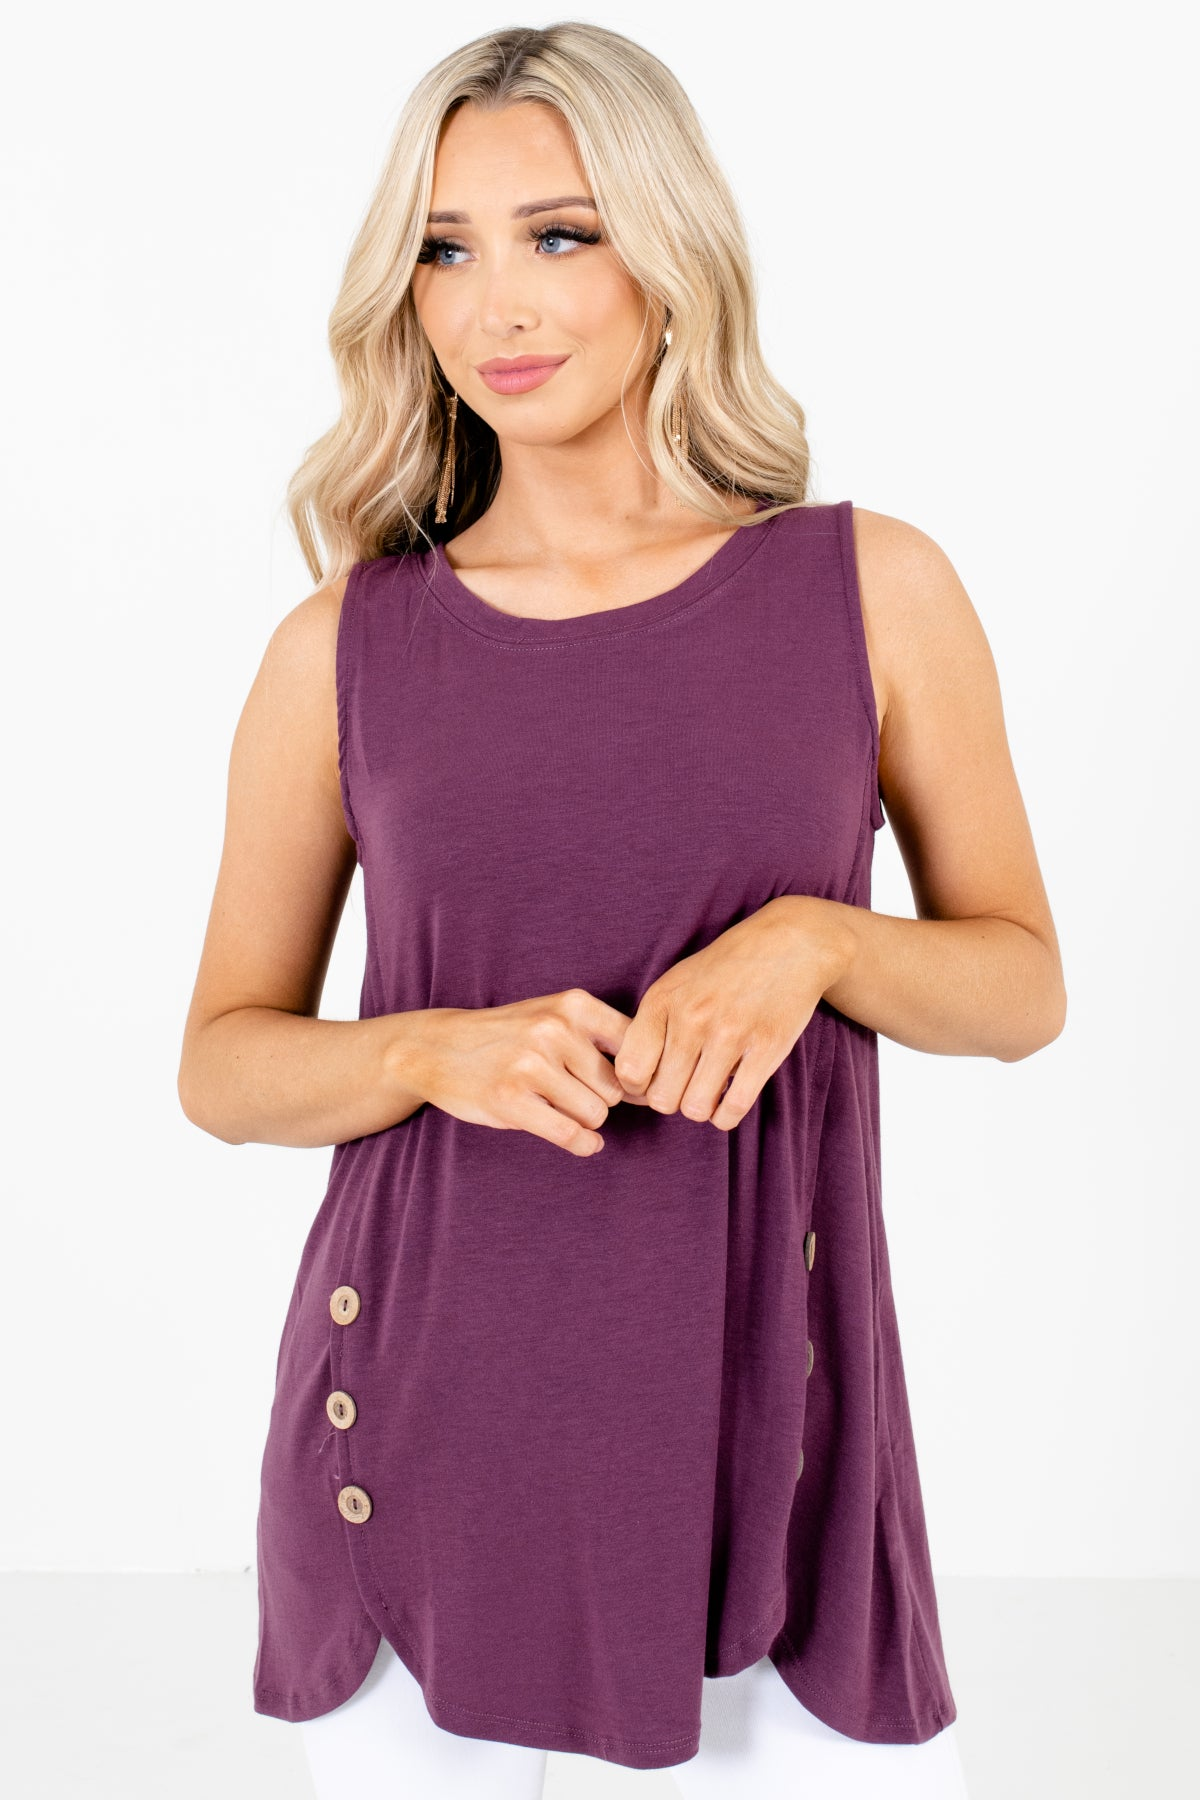 Purple Round Neckline Boutique Tank Tops for Women